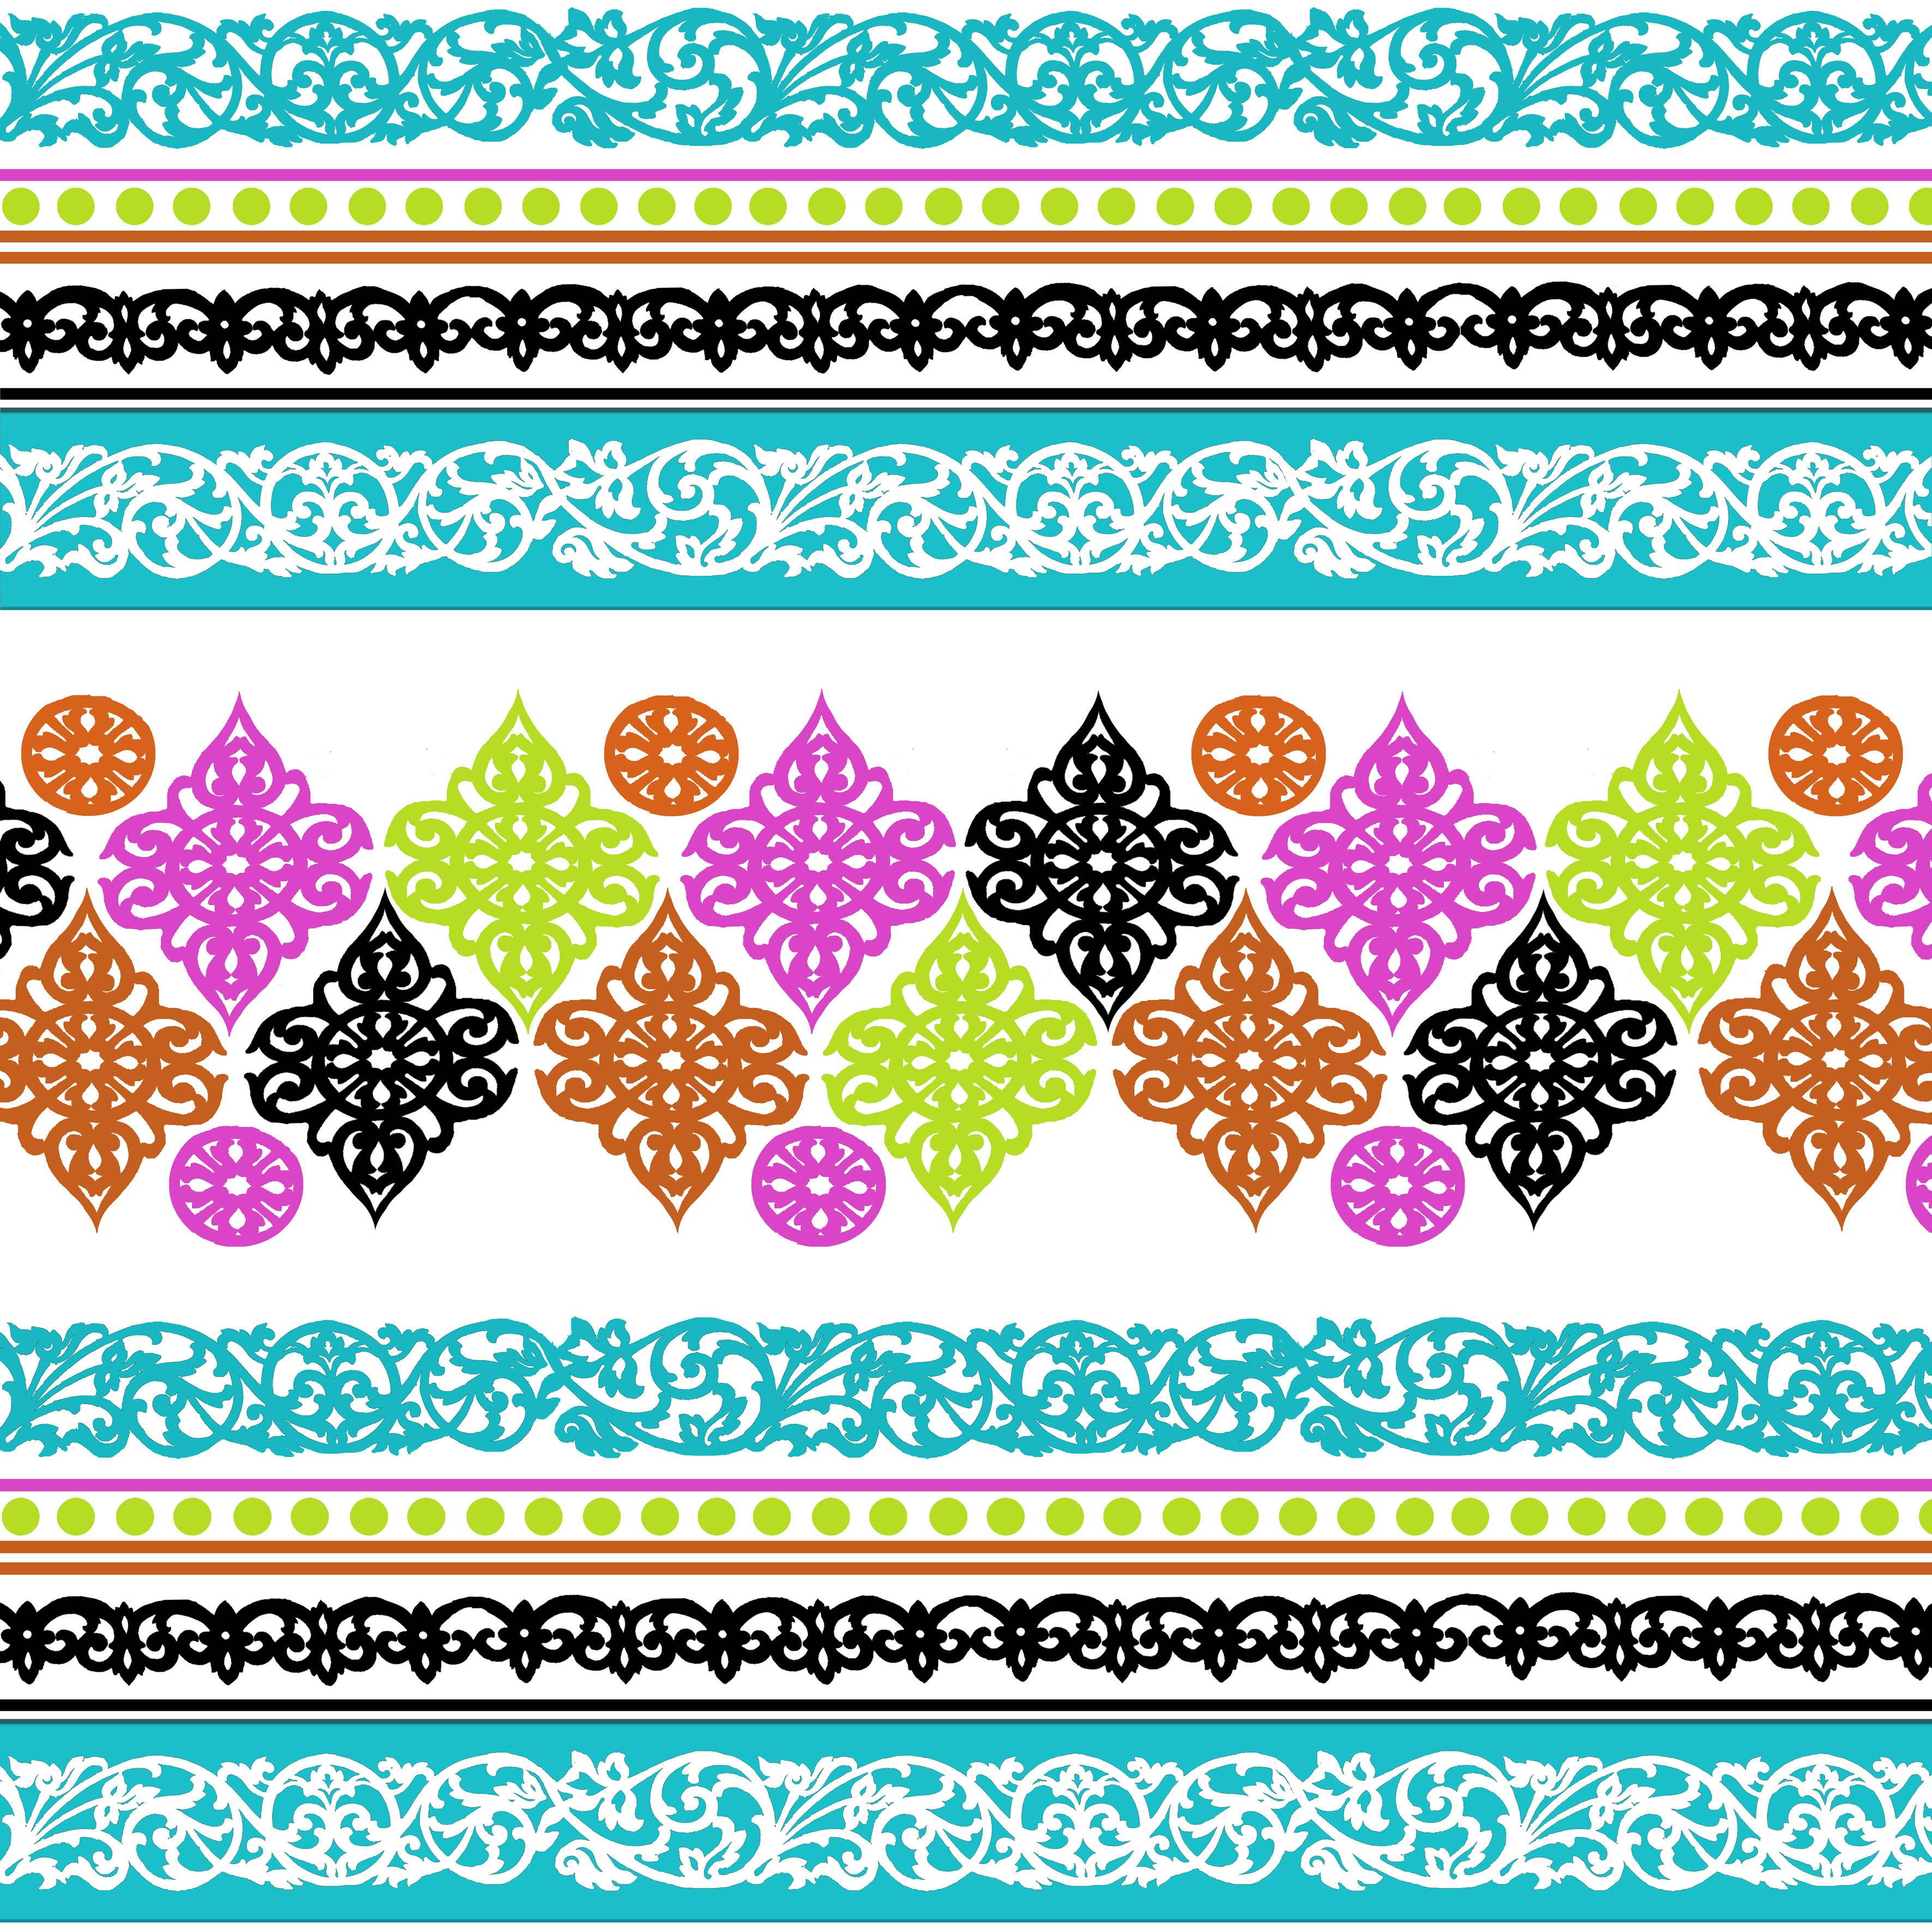 A colourful print design inspired by my travels around South East Asia. Gemma Lofthouse ©